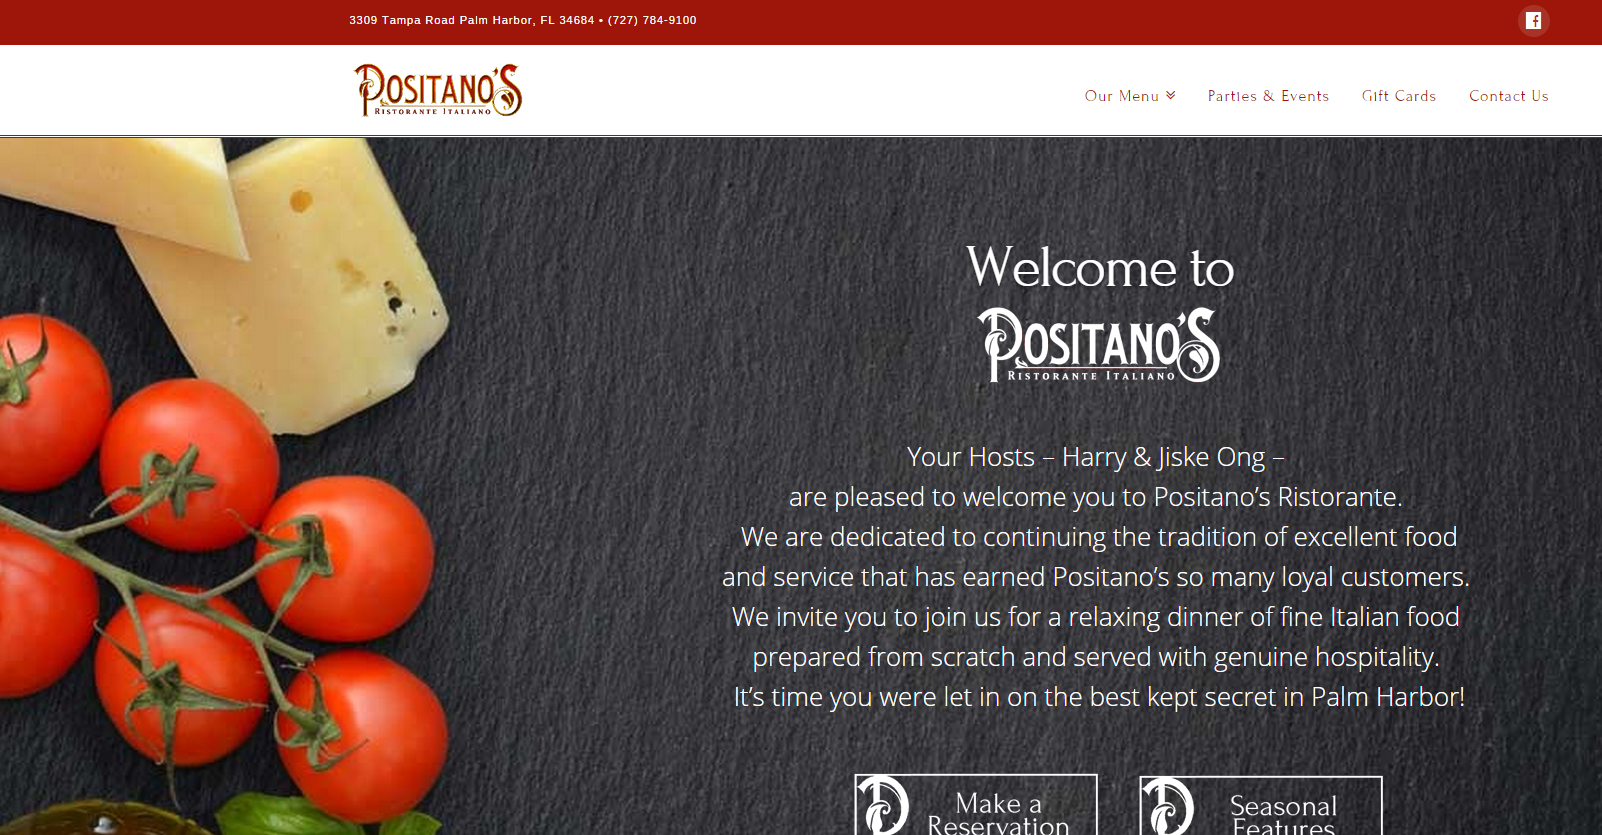 positano's, small business, restaurant, web site, redesign